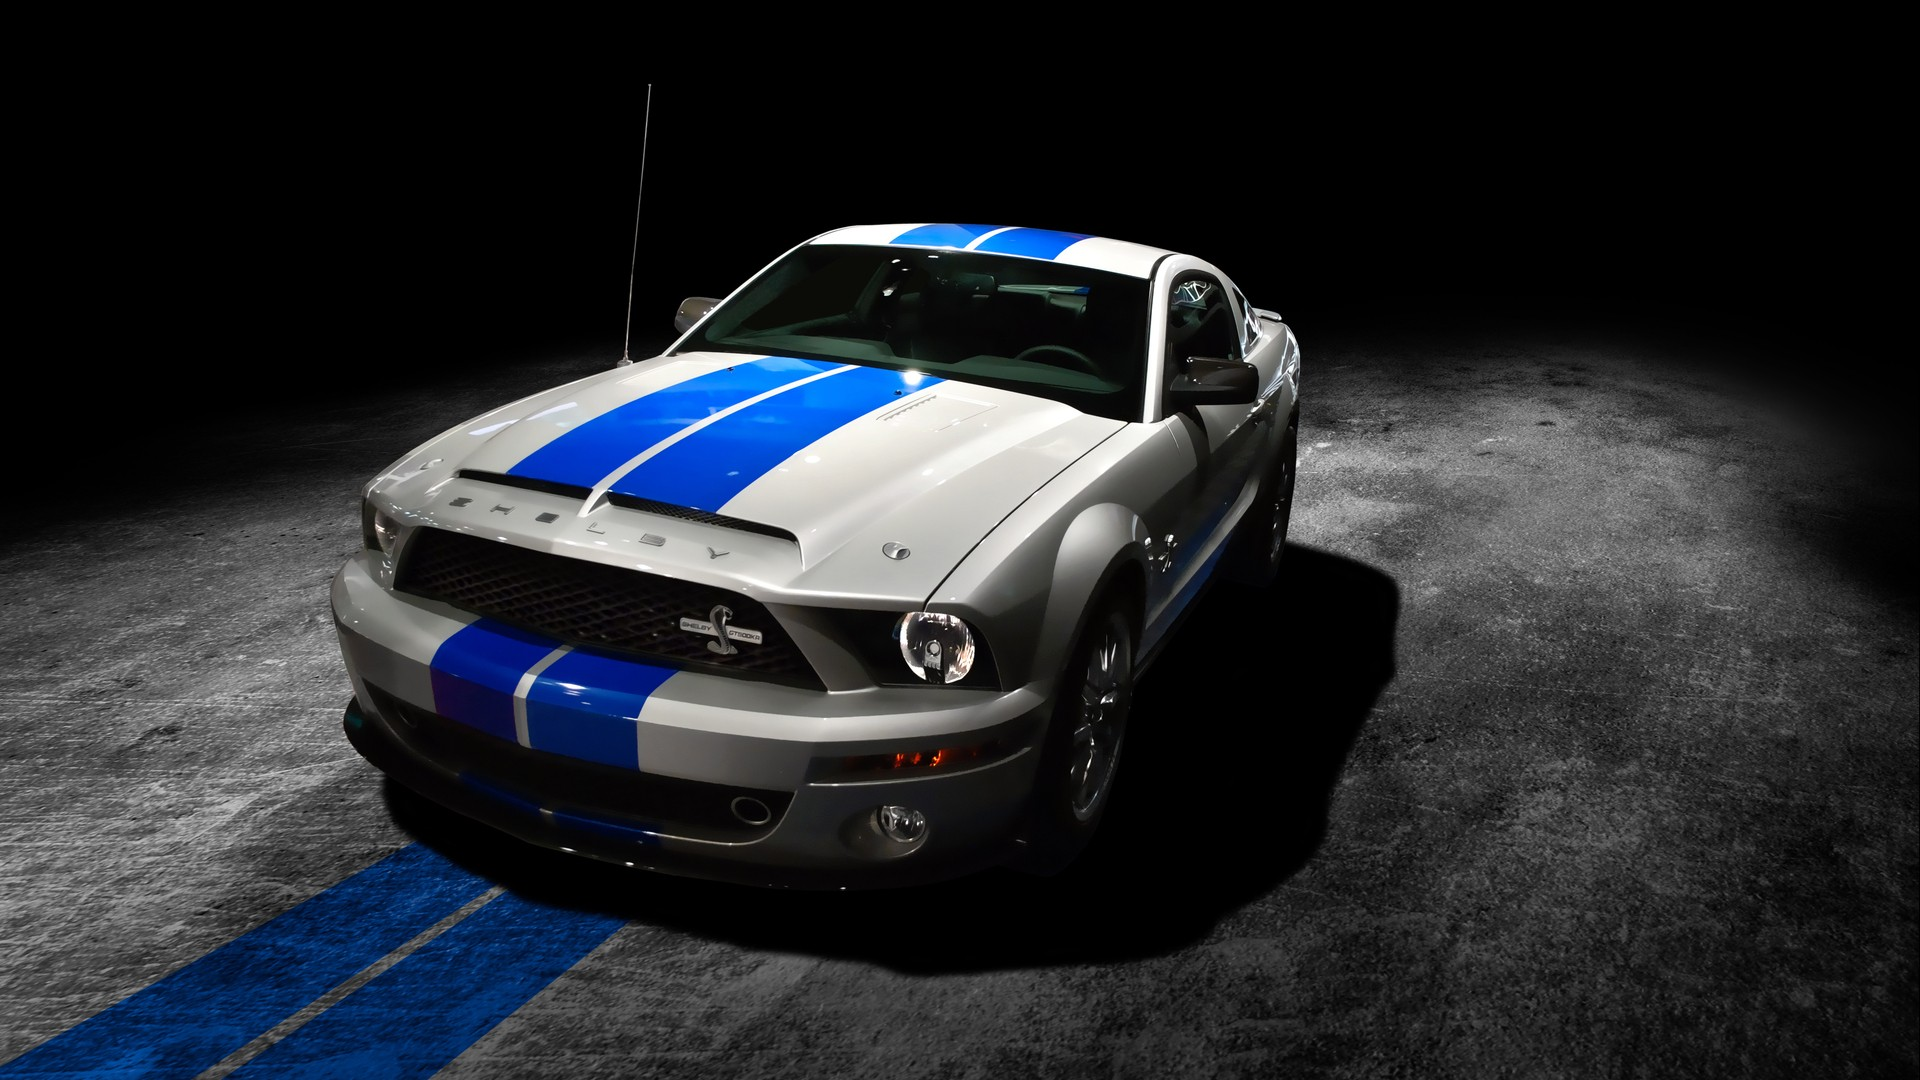 Muscle Car Screensavers And Wallpaper: [49+] Muscle Car Screensavers And Wallpaper On WallpaperSafari